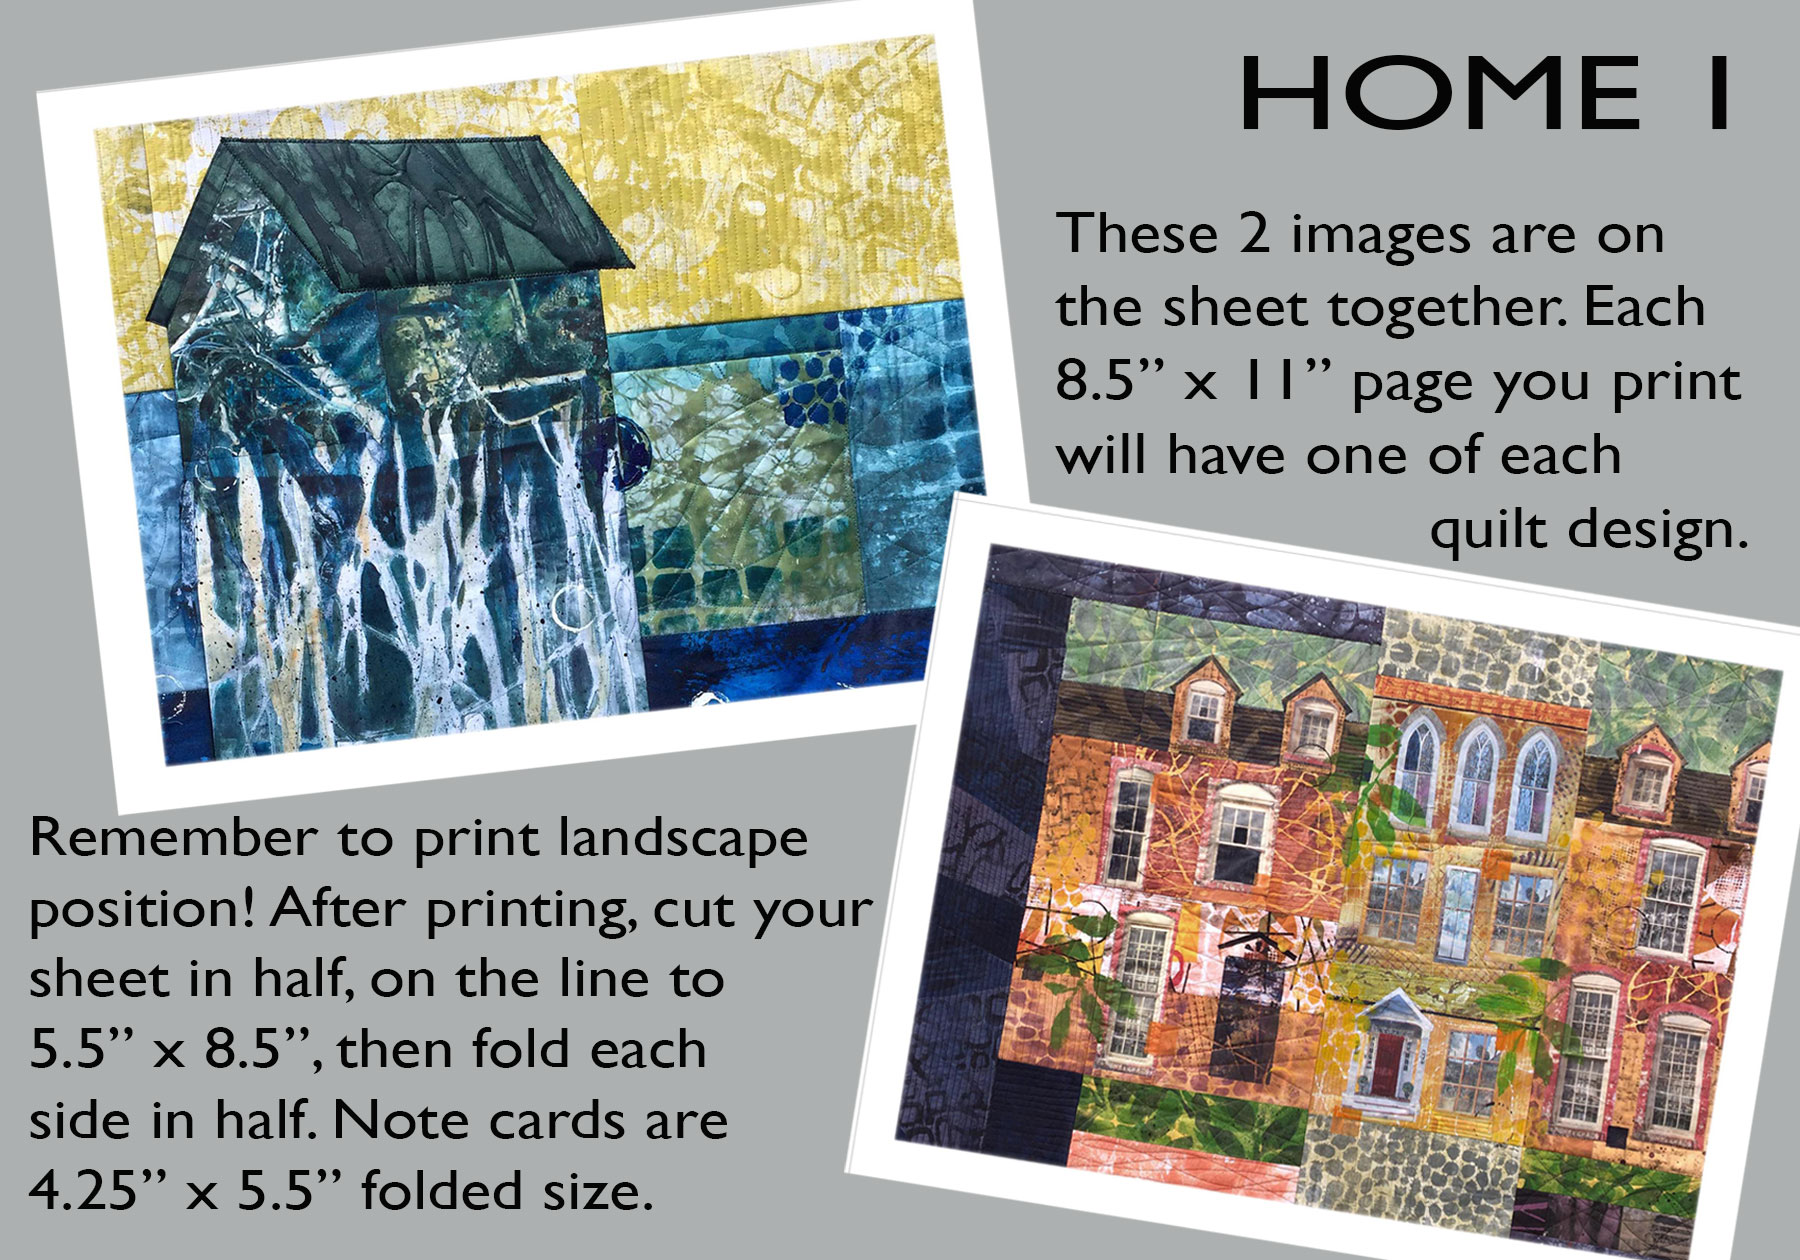 Bobbibaughstudio-notecards-home-1-rev.jpg